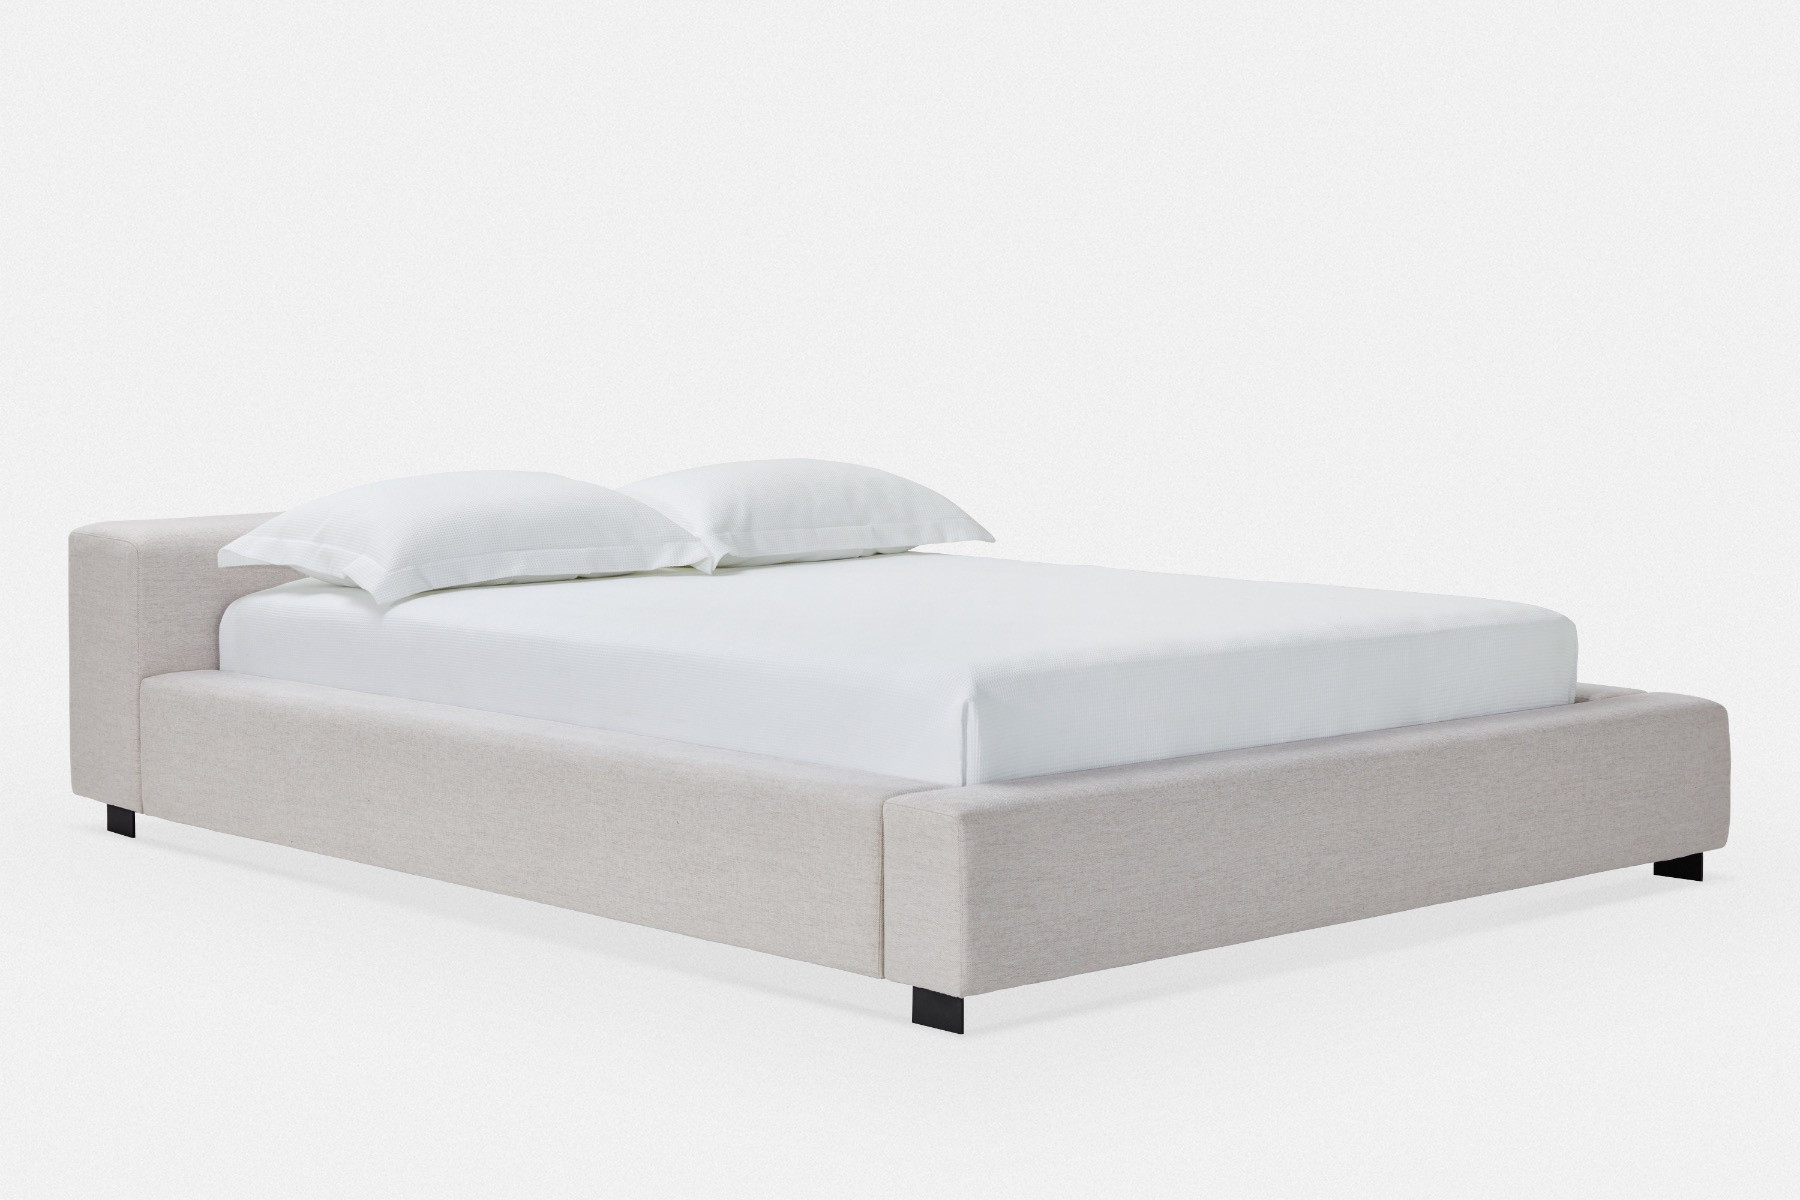 Ampio Upholstered Bed Queen Or King Size Maison Corbeil